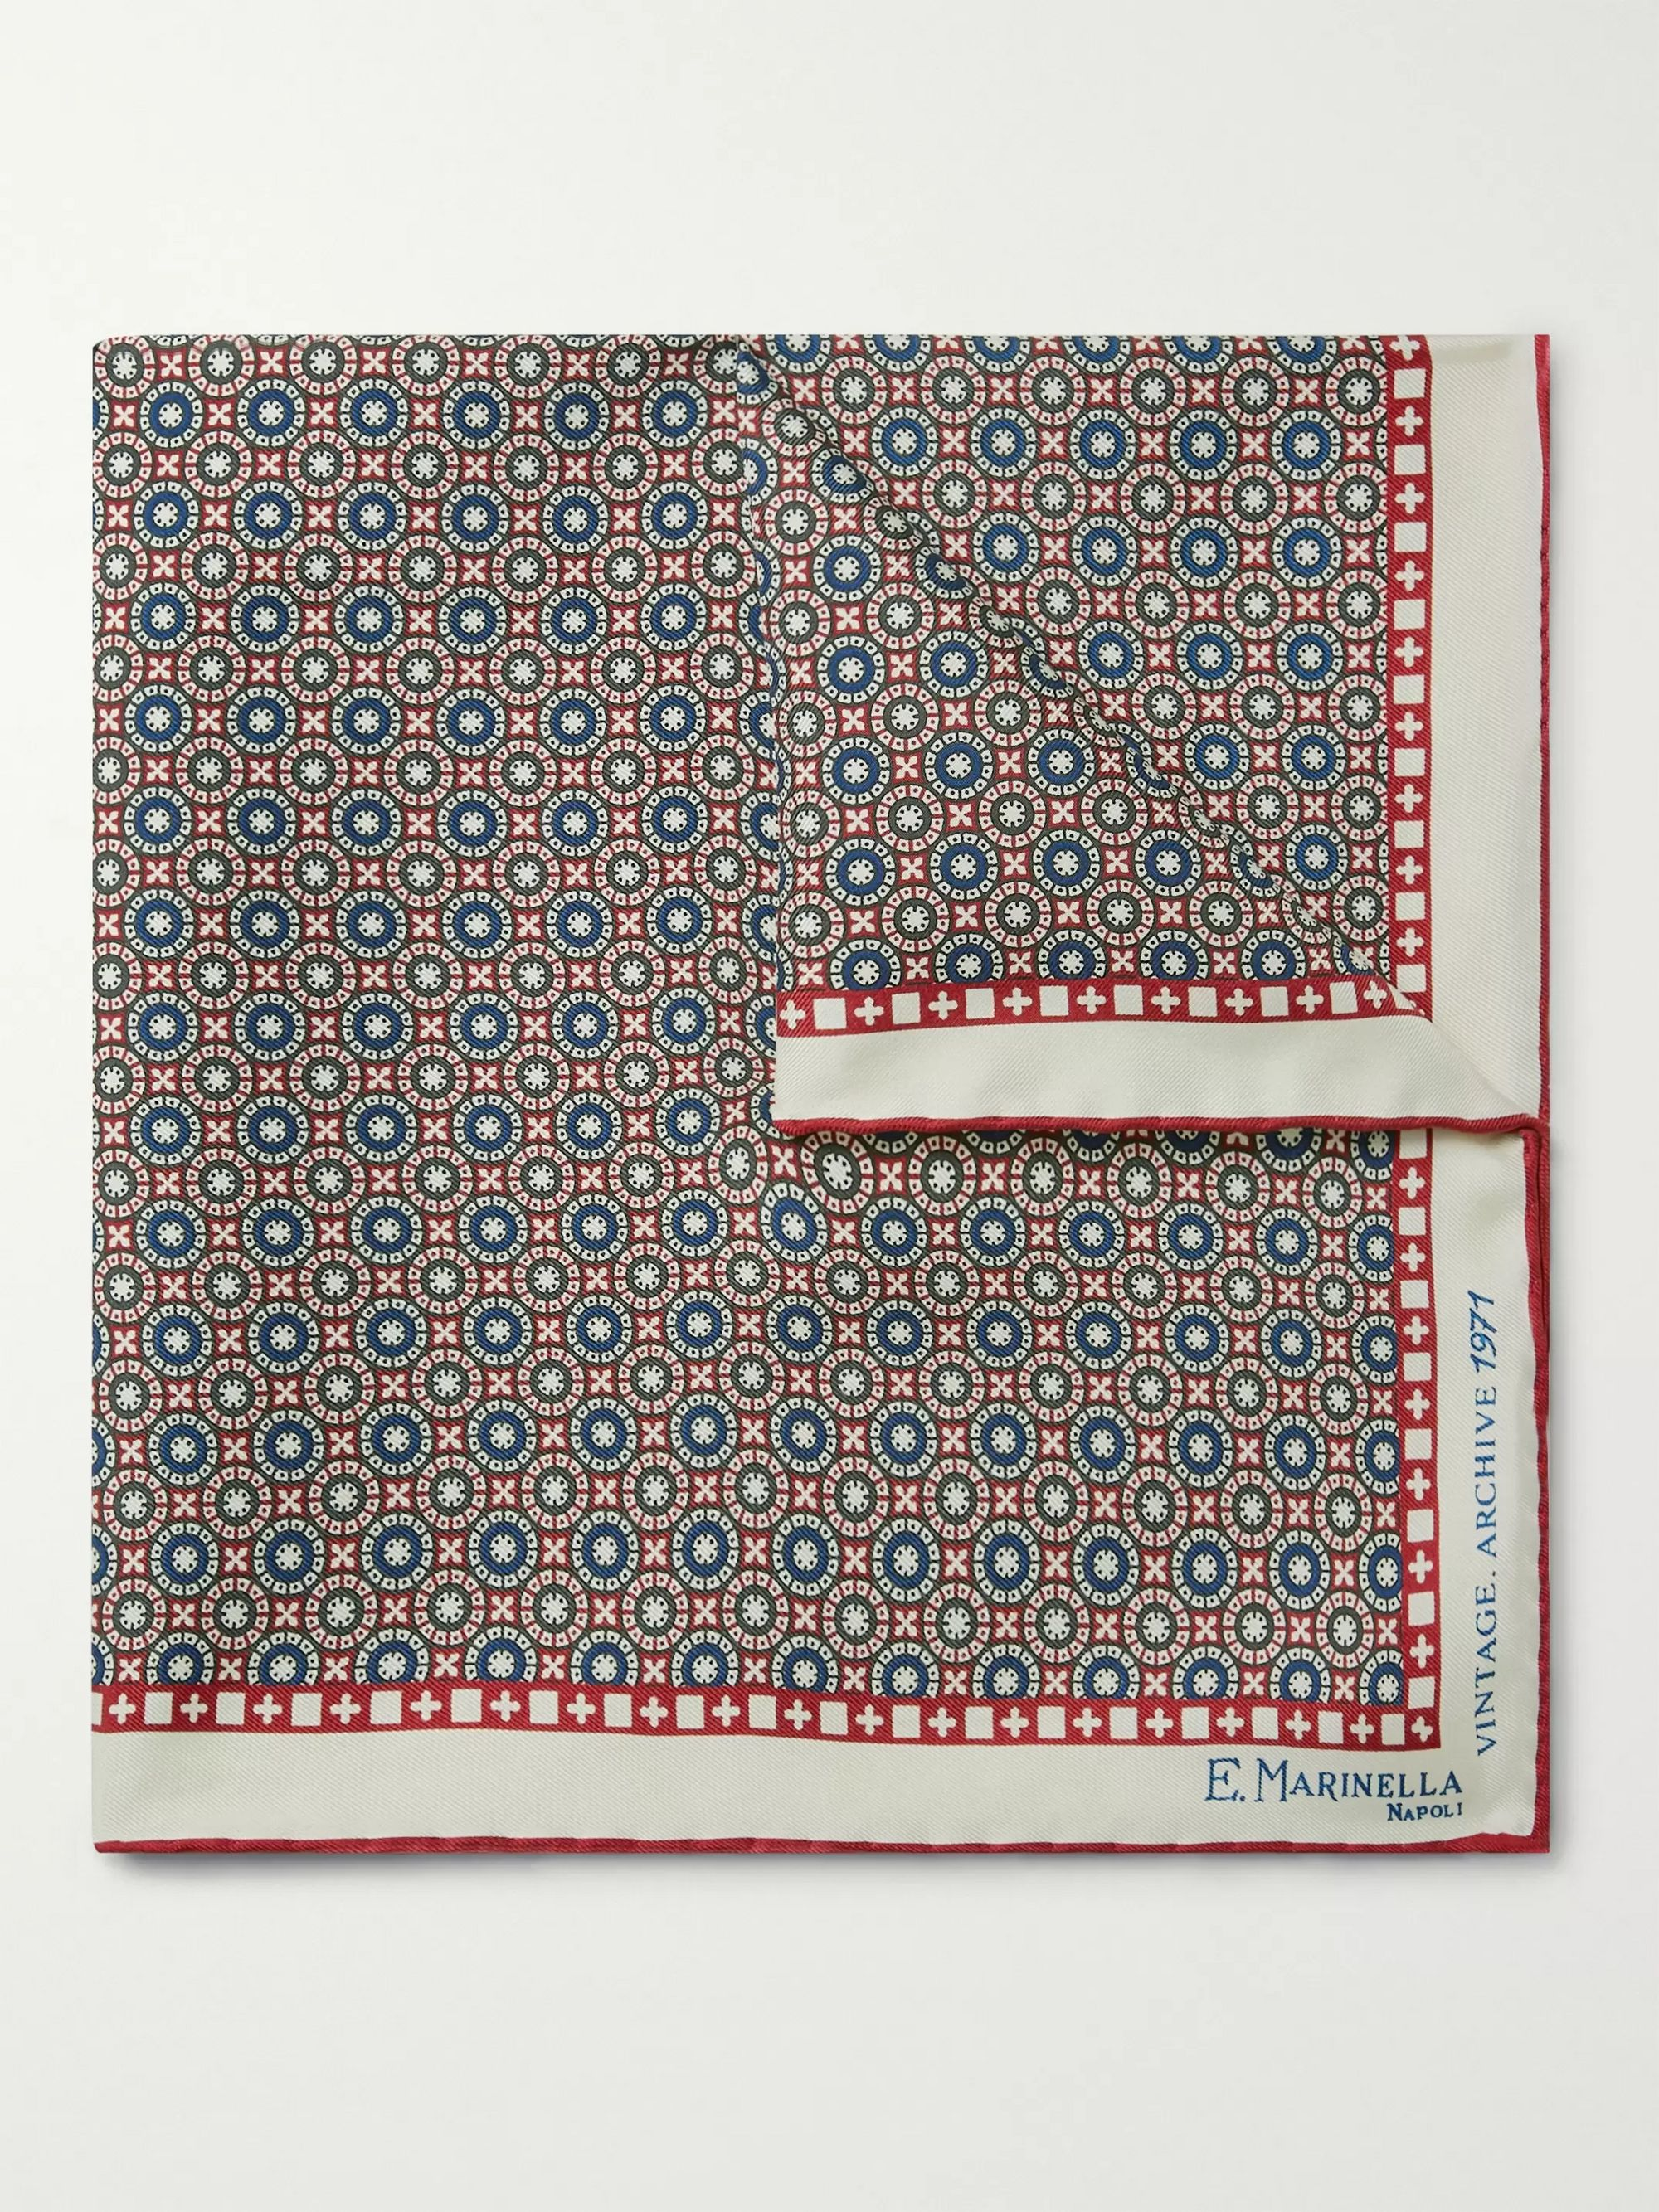 E.MARINELLA 1971 Archive Printed Silk-Twill Pocket Square